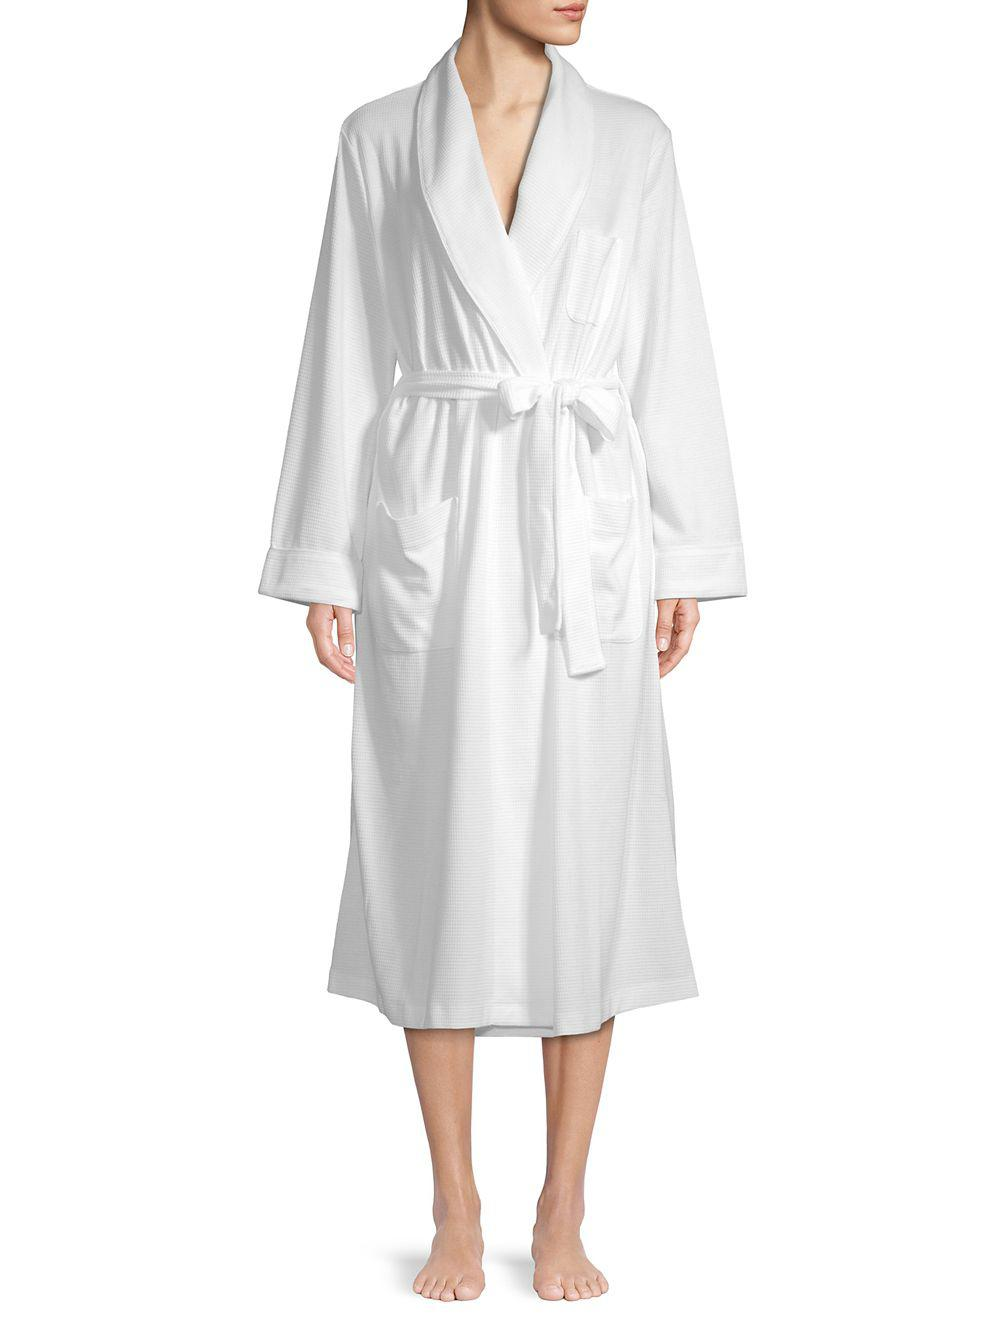 707a46e5e3c17 Lyst - Lord & Taylor Long Waffle Robe in White